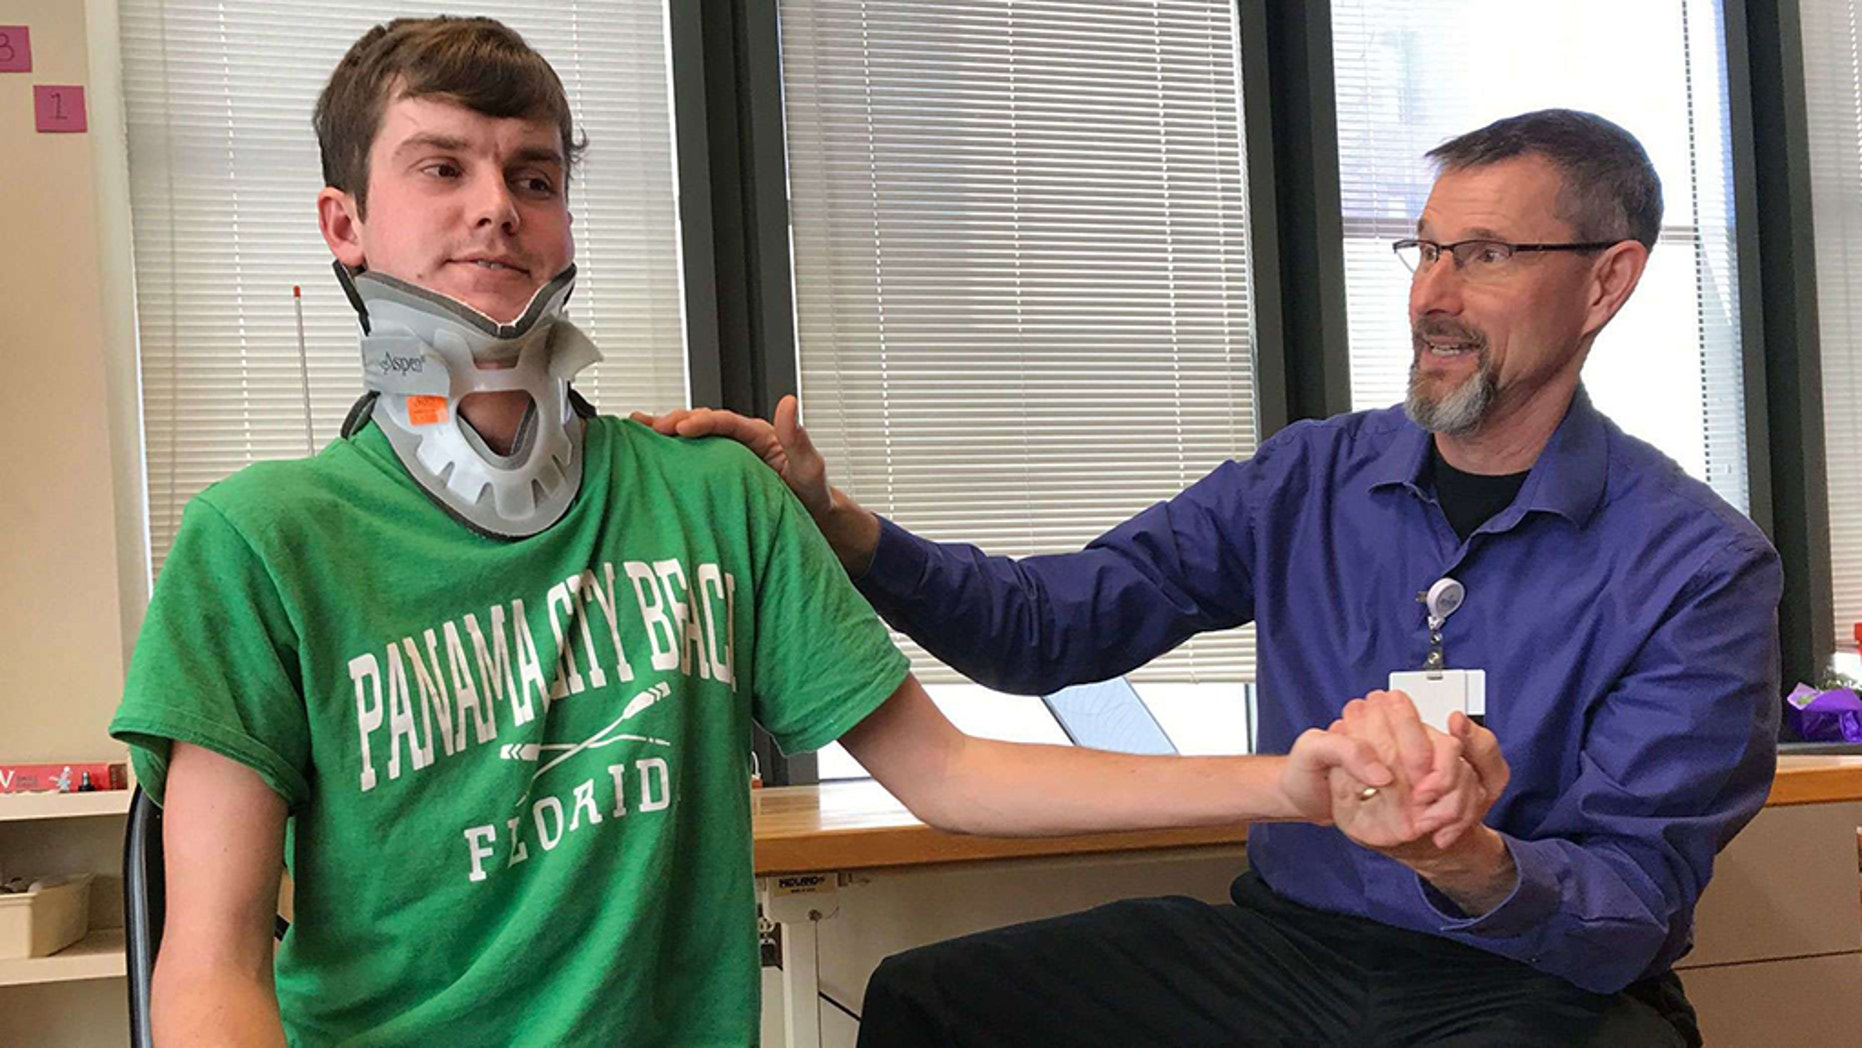 Indiana man survives internal decapitation years after beating brain